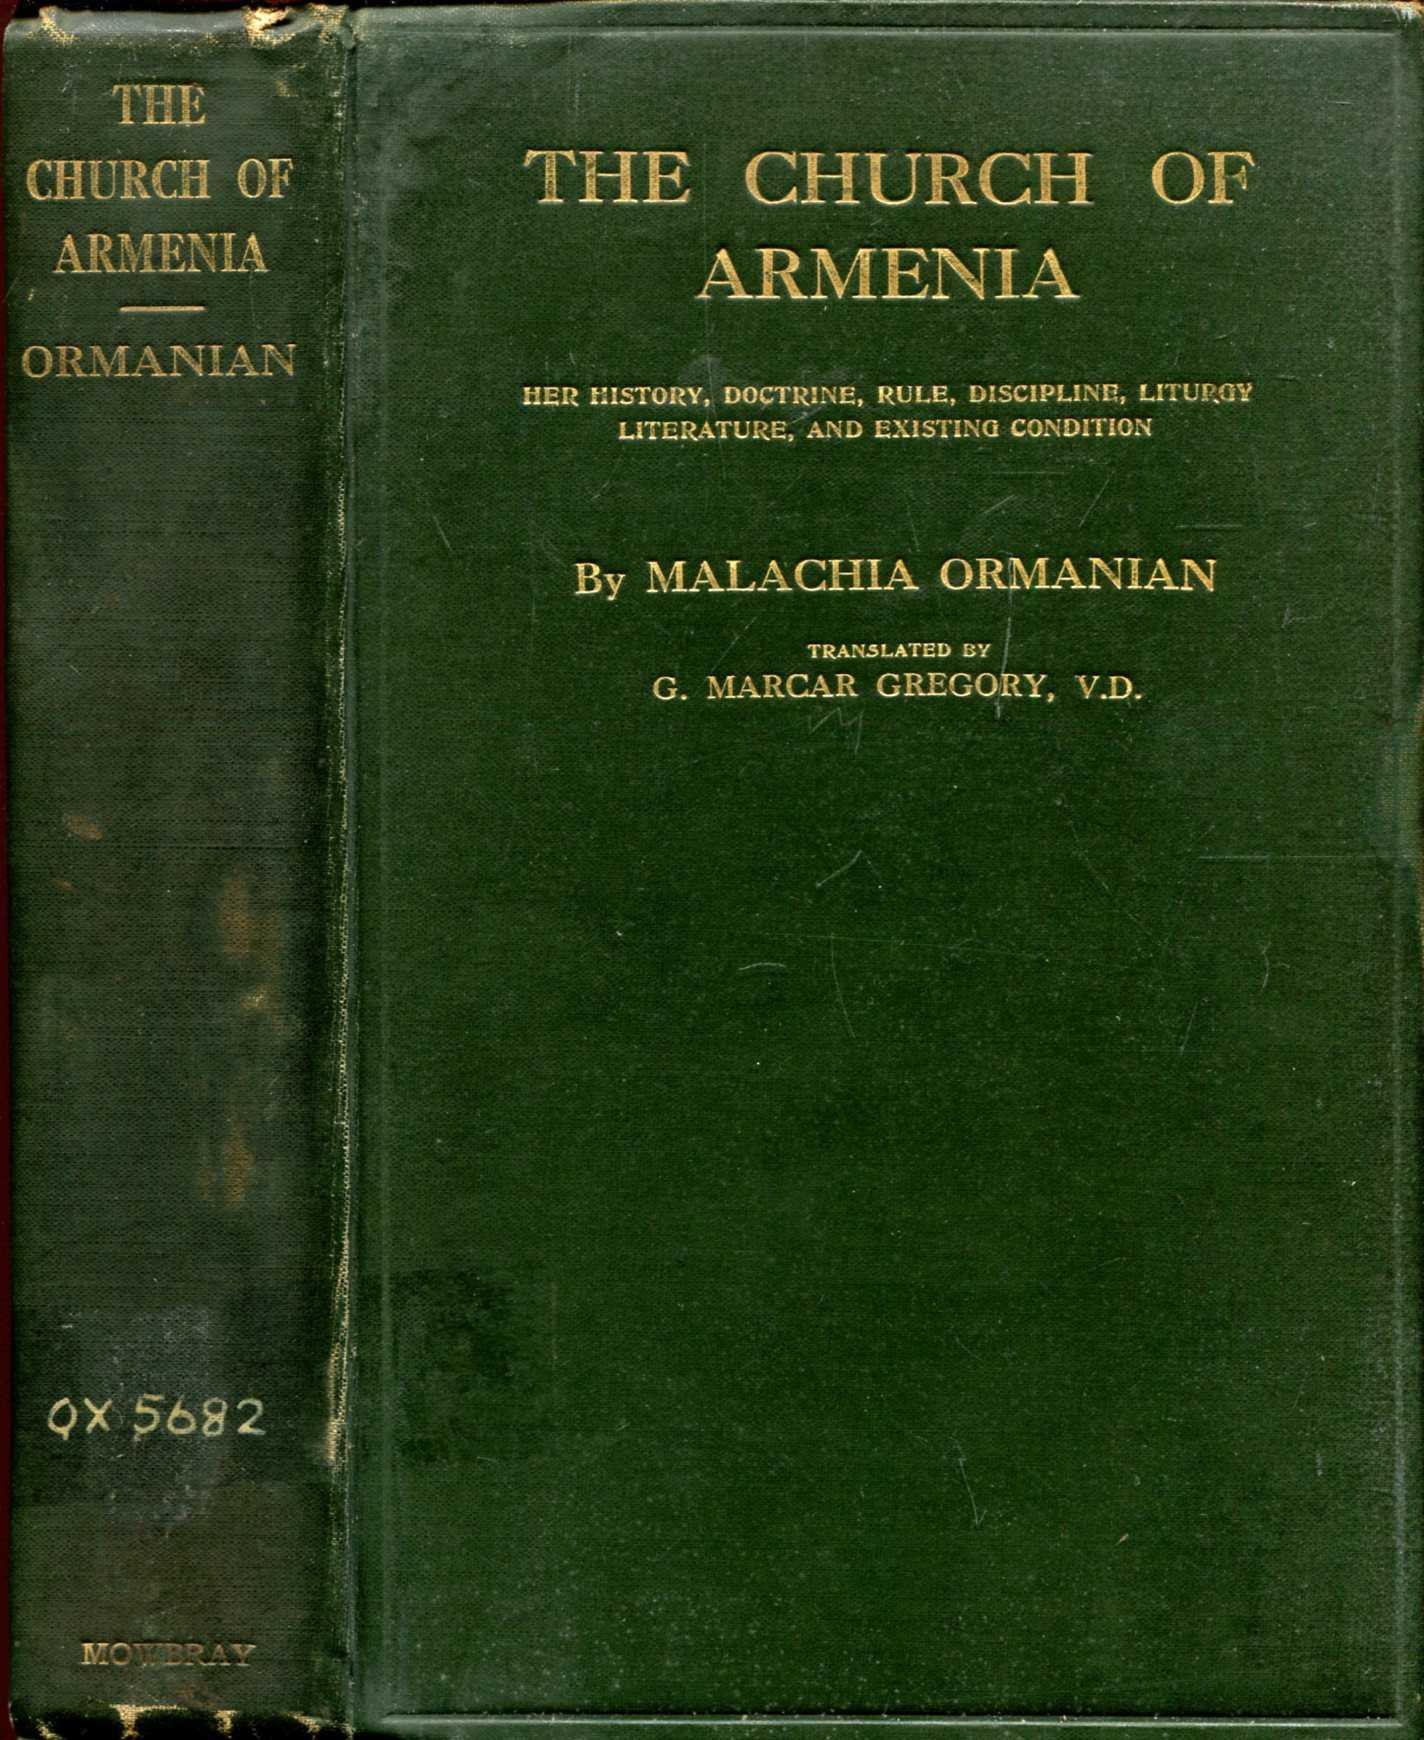 Image for The Church of Armenia : her history, doctrine, rule, discipline, liturgy, literature, and existing condition